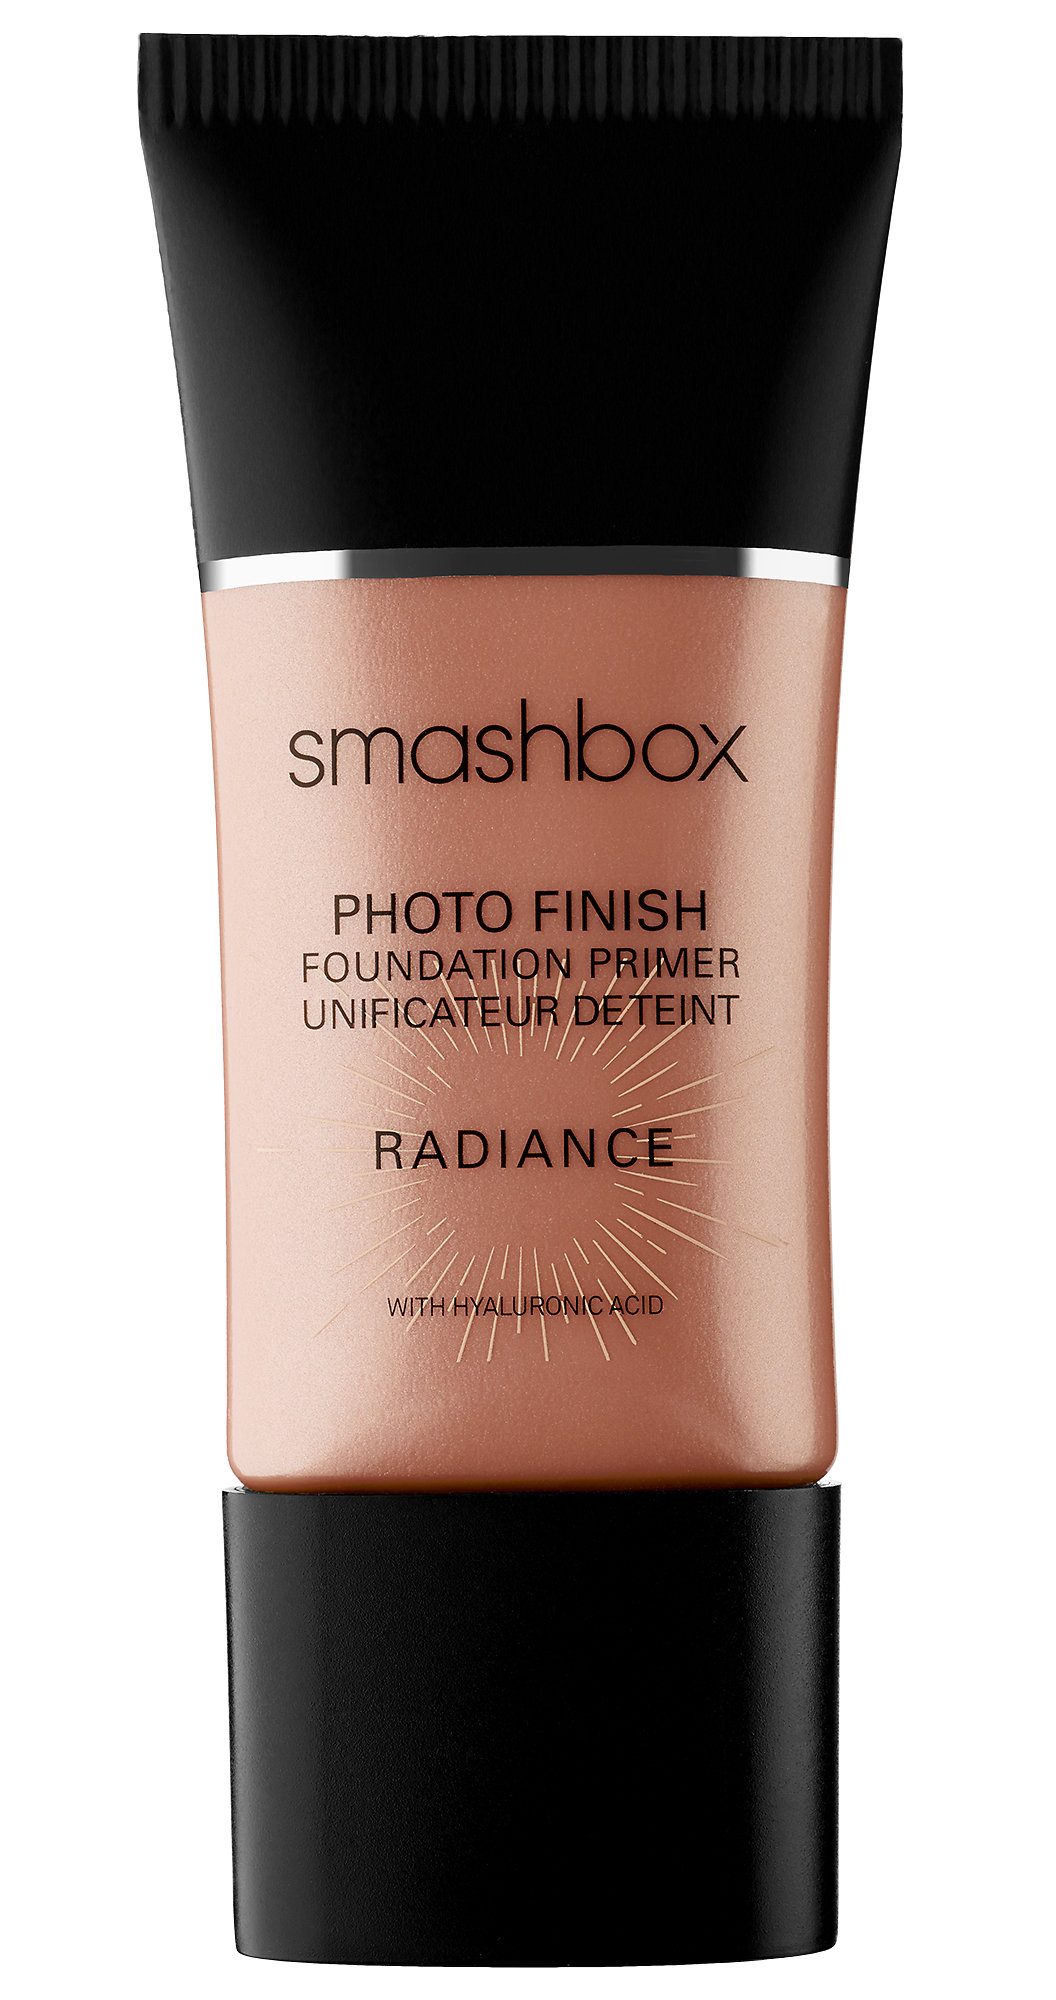 Smashbox Photo Finish Foundation Primer – Radiance (1)